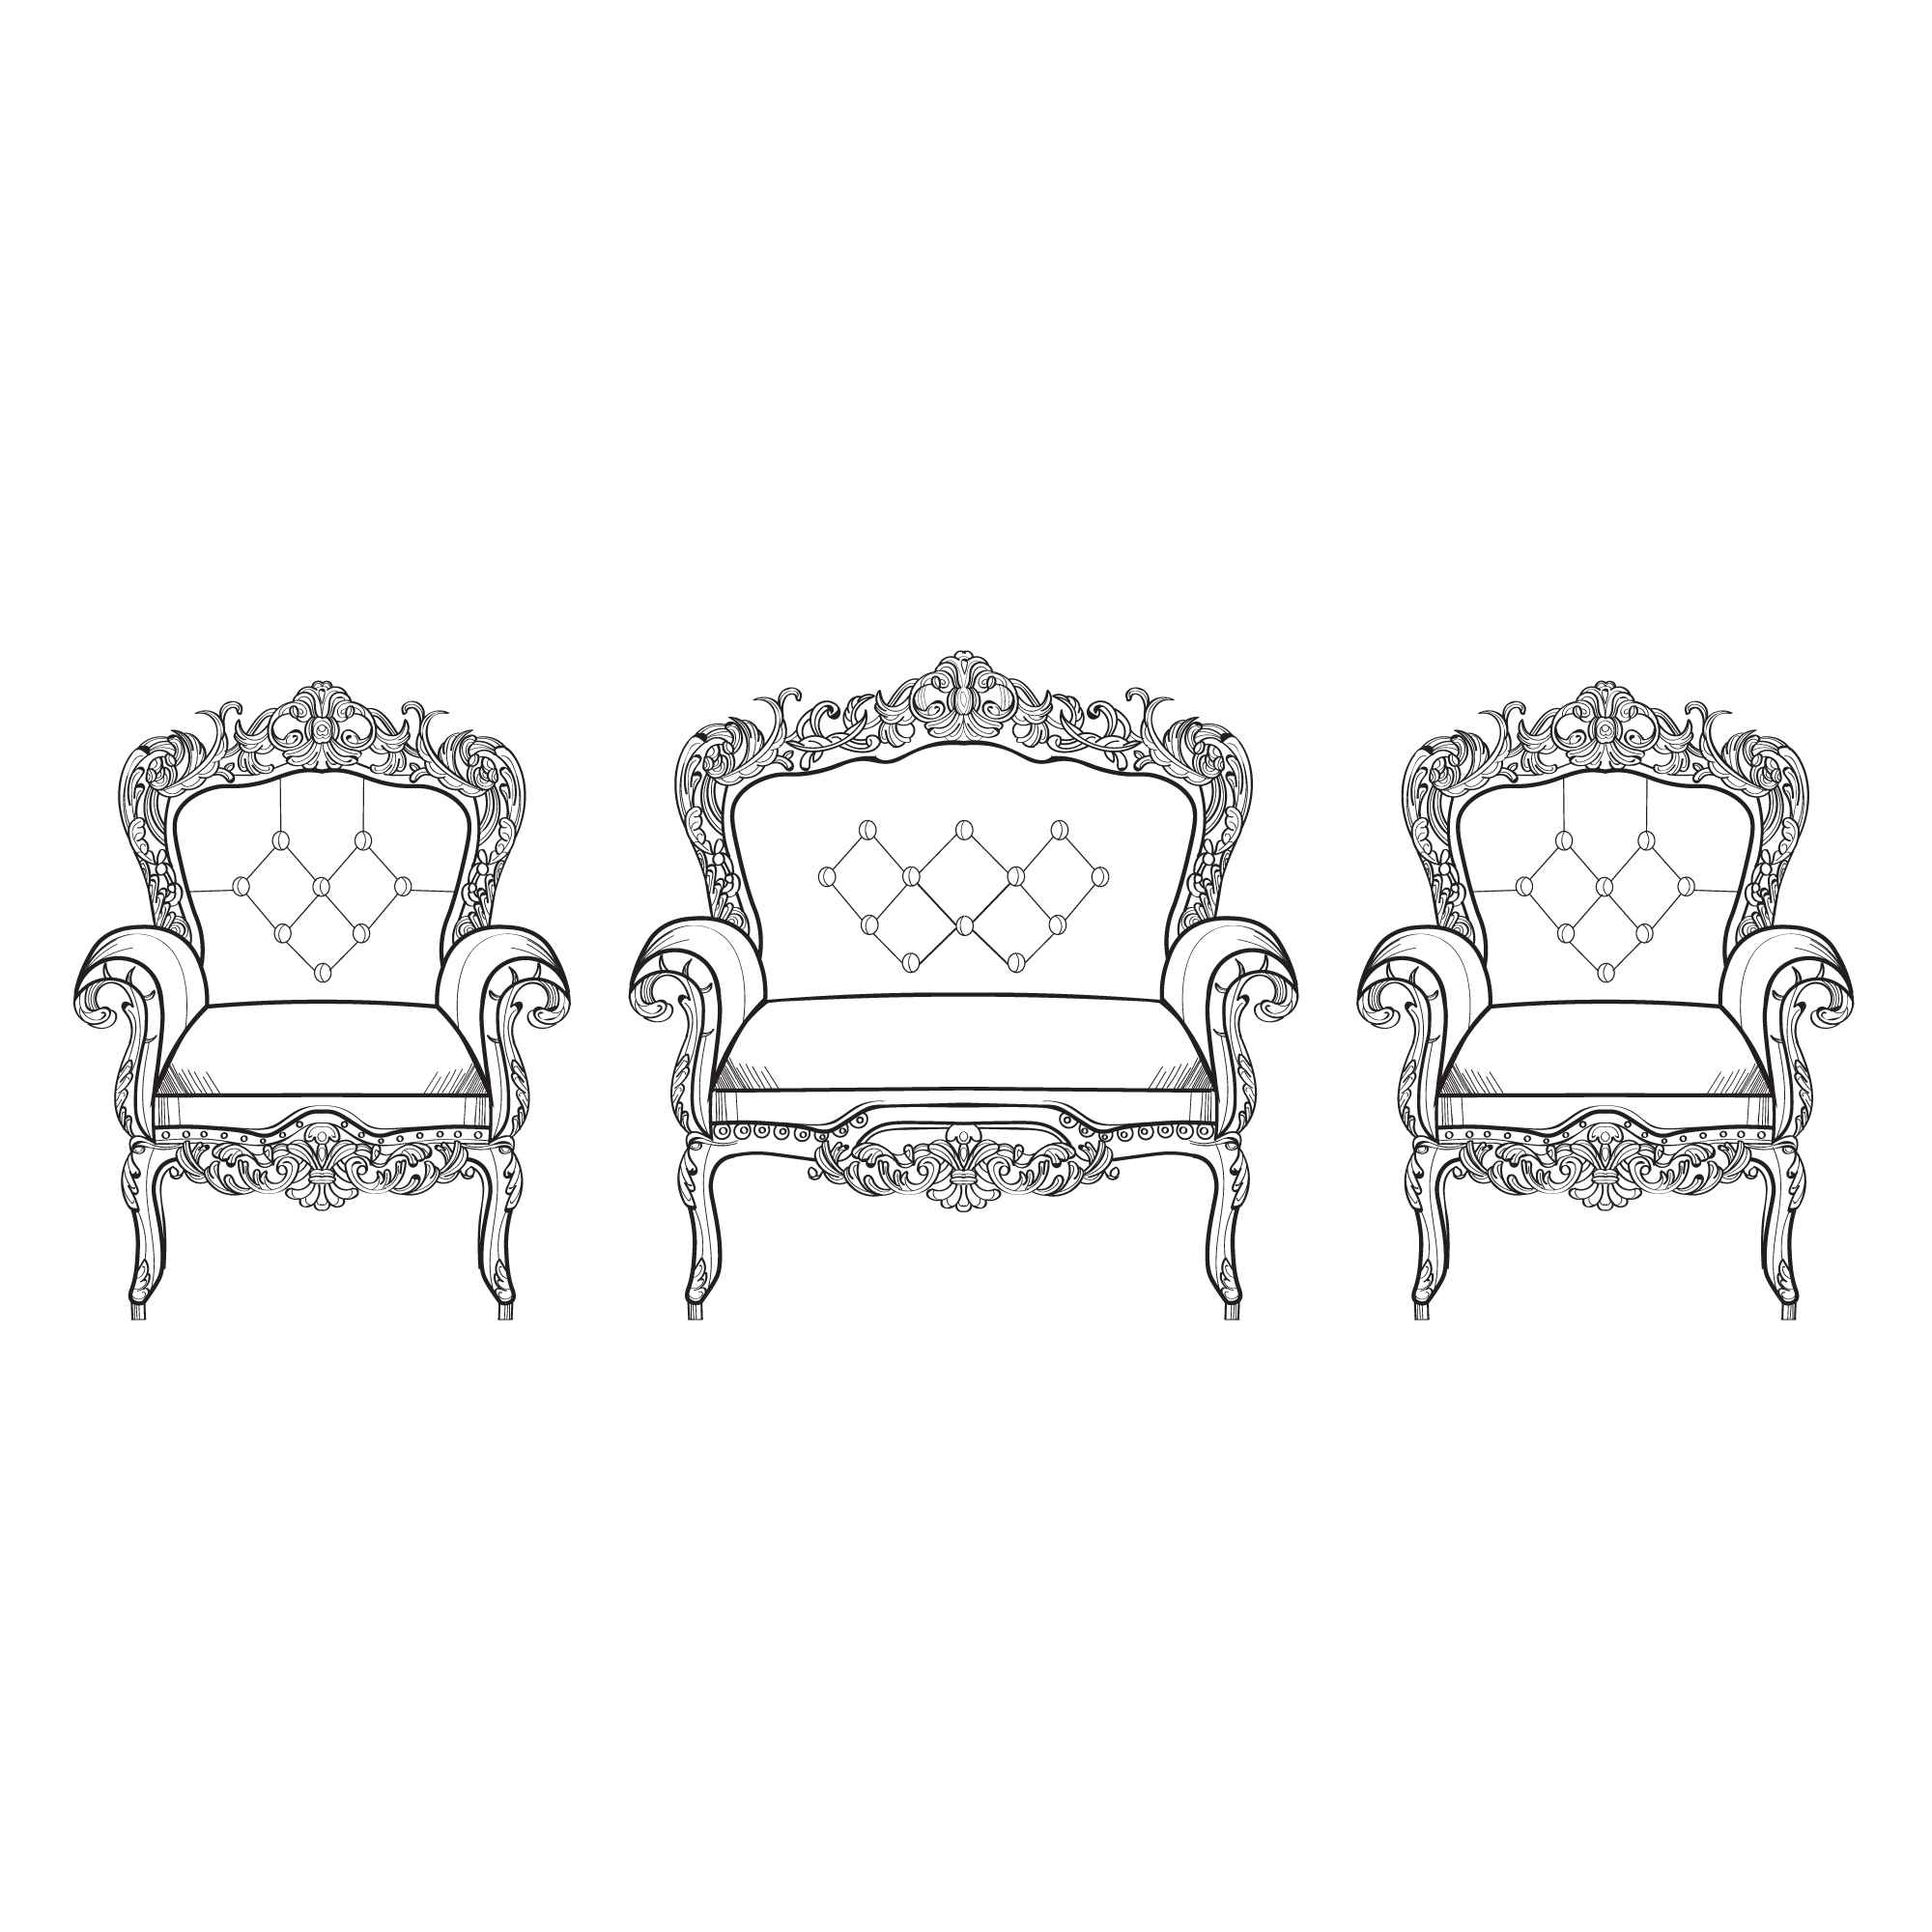 Luxury chairs collection